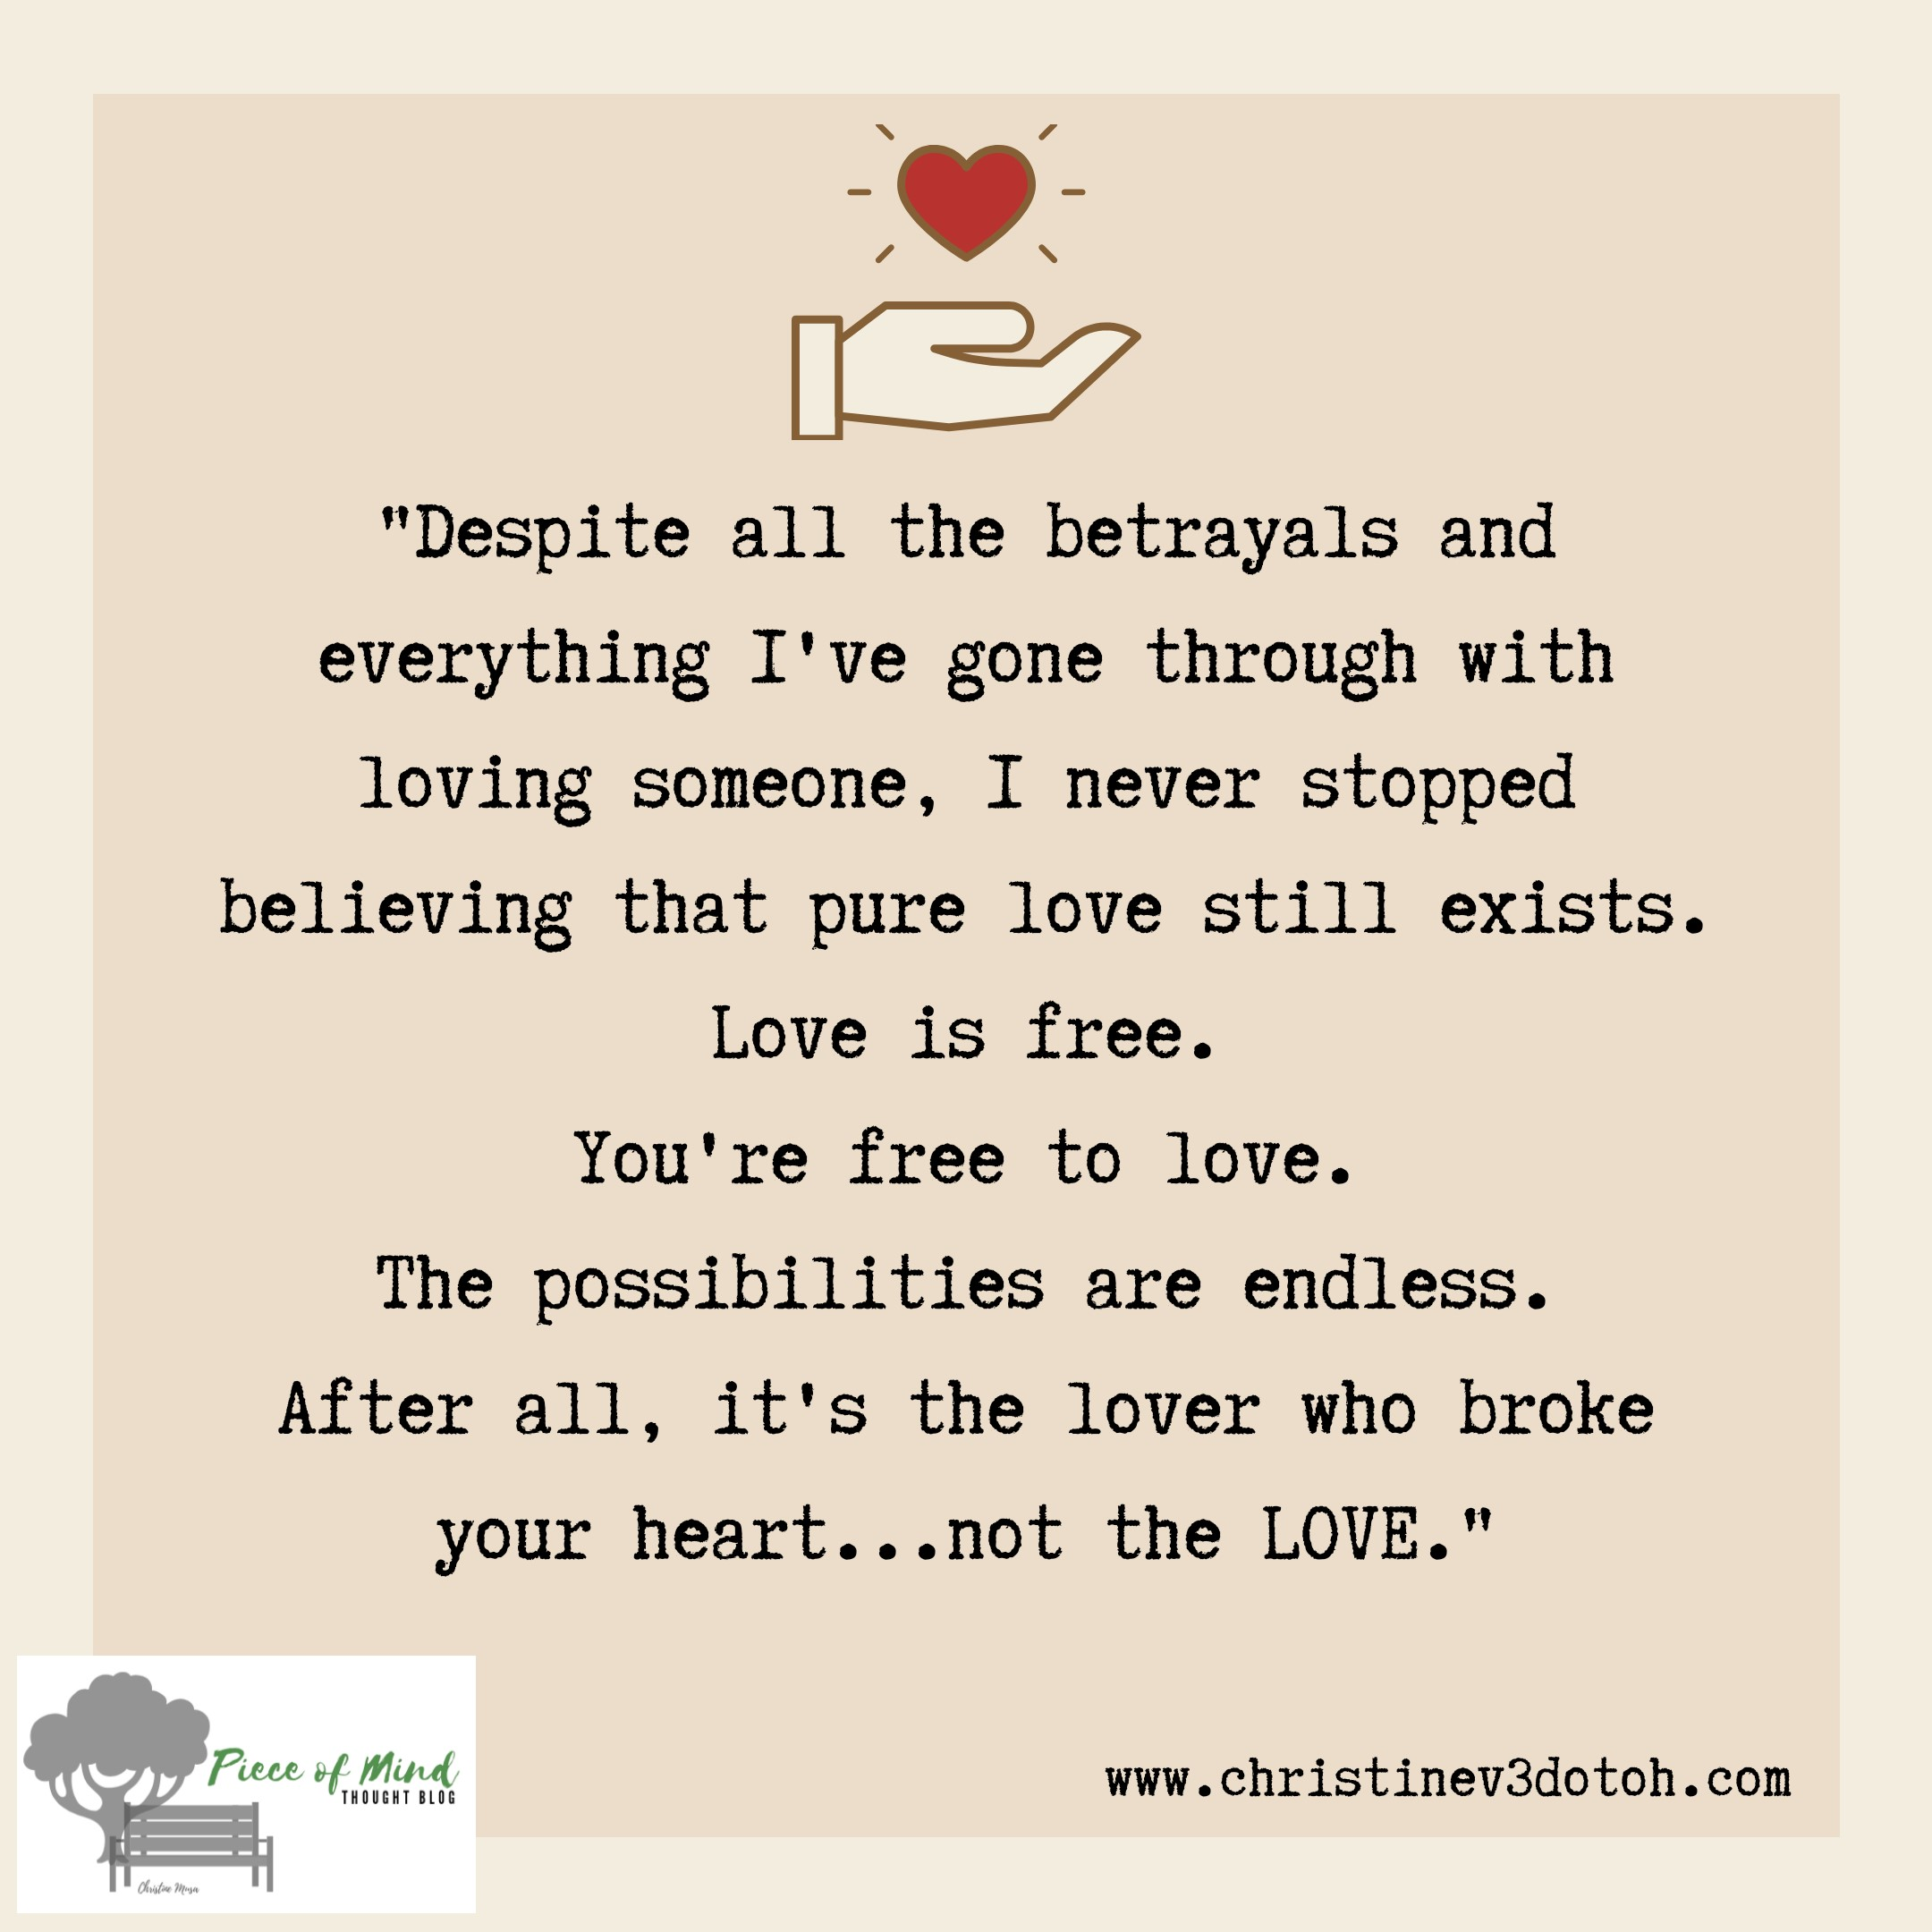 89.-Its-the-Lover-Not-the-Love-Who-Broke-Your-Heart